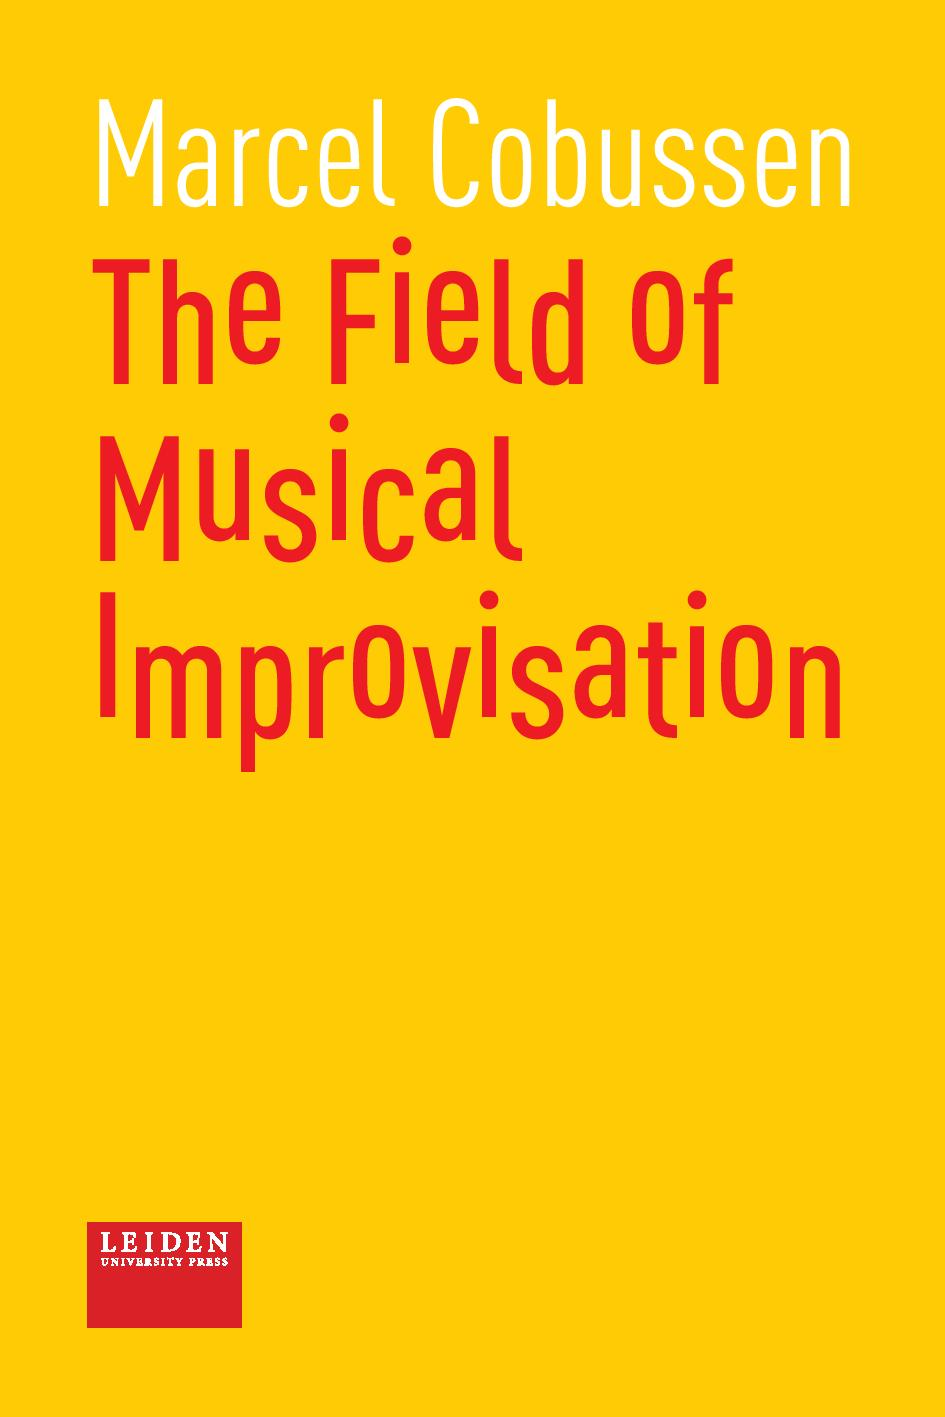 lup-the-field-of-musical-improvisation-01-page-001